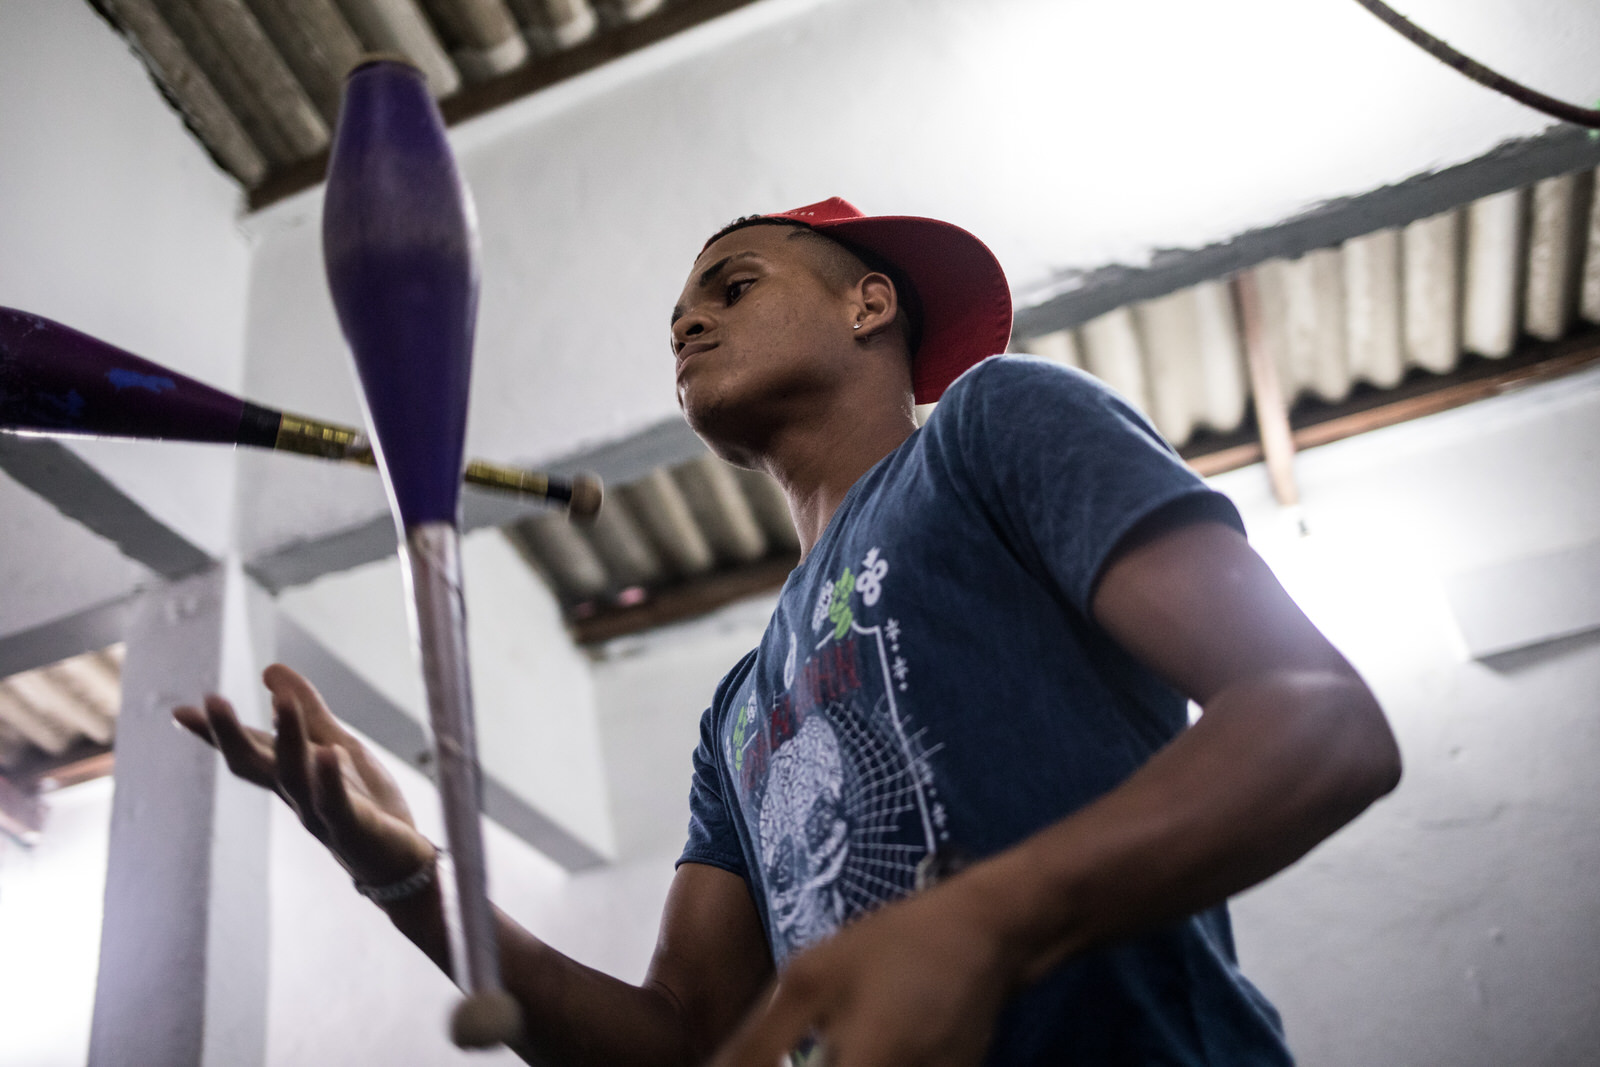 The centre teaches children and youth activities such as music, art, boxing, capoeira, juggling and dance as a way to encourage school attendance and keep young people away from engaging in street crime.